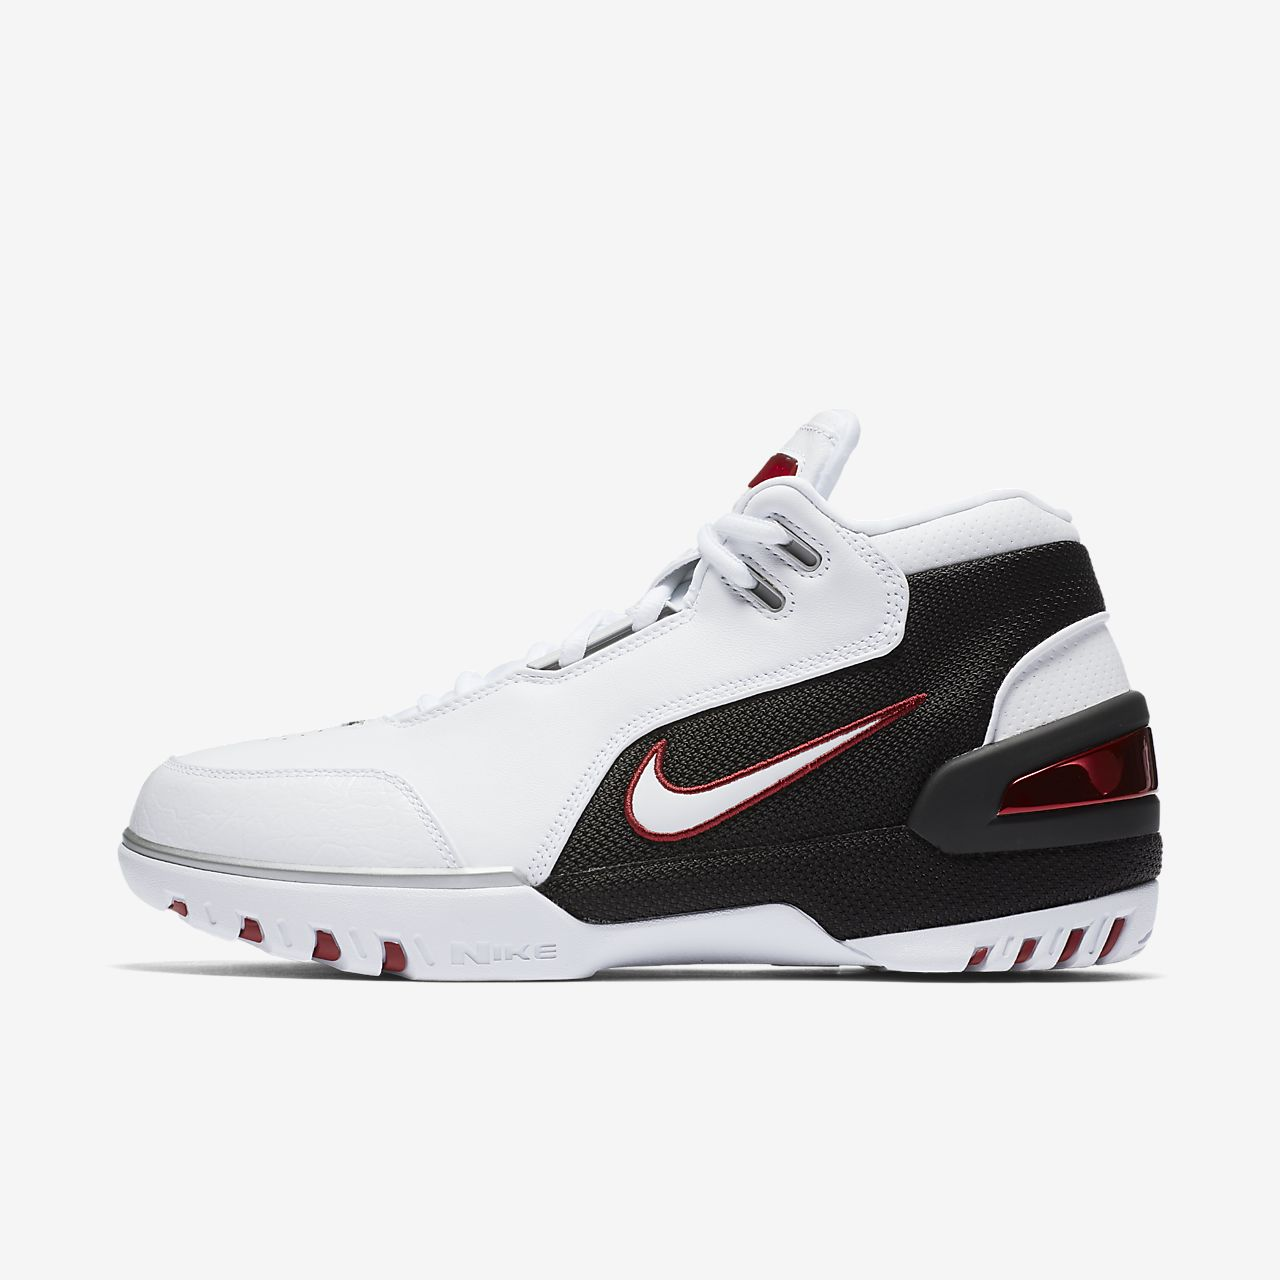 b03077ebd3627 Nike Air Zoom Generation QS Men s Basketball Shoe. Nike.com CA